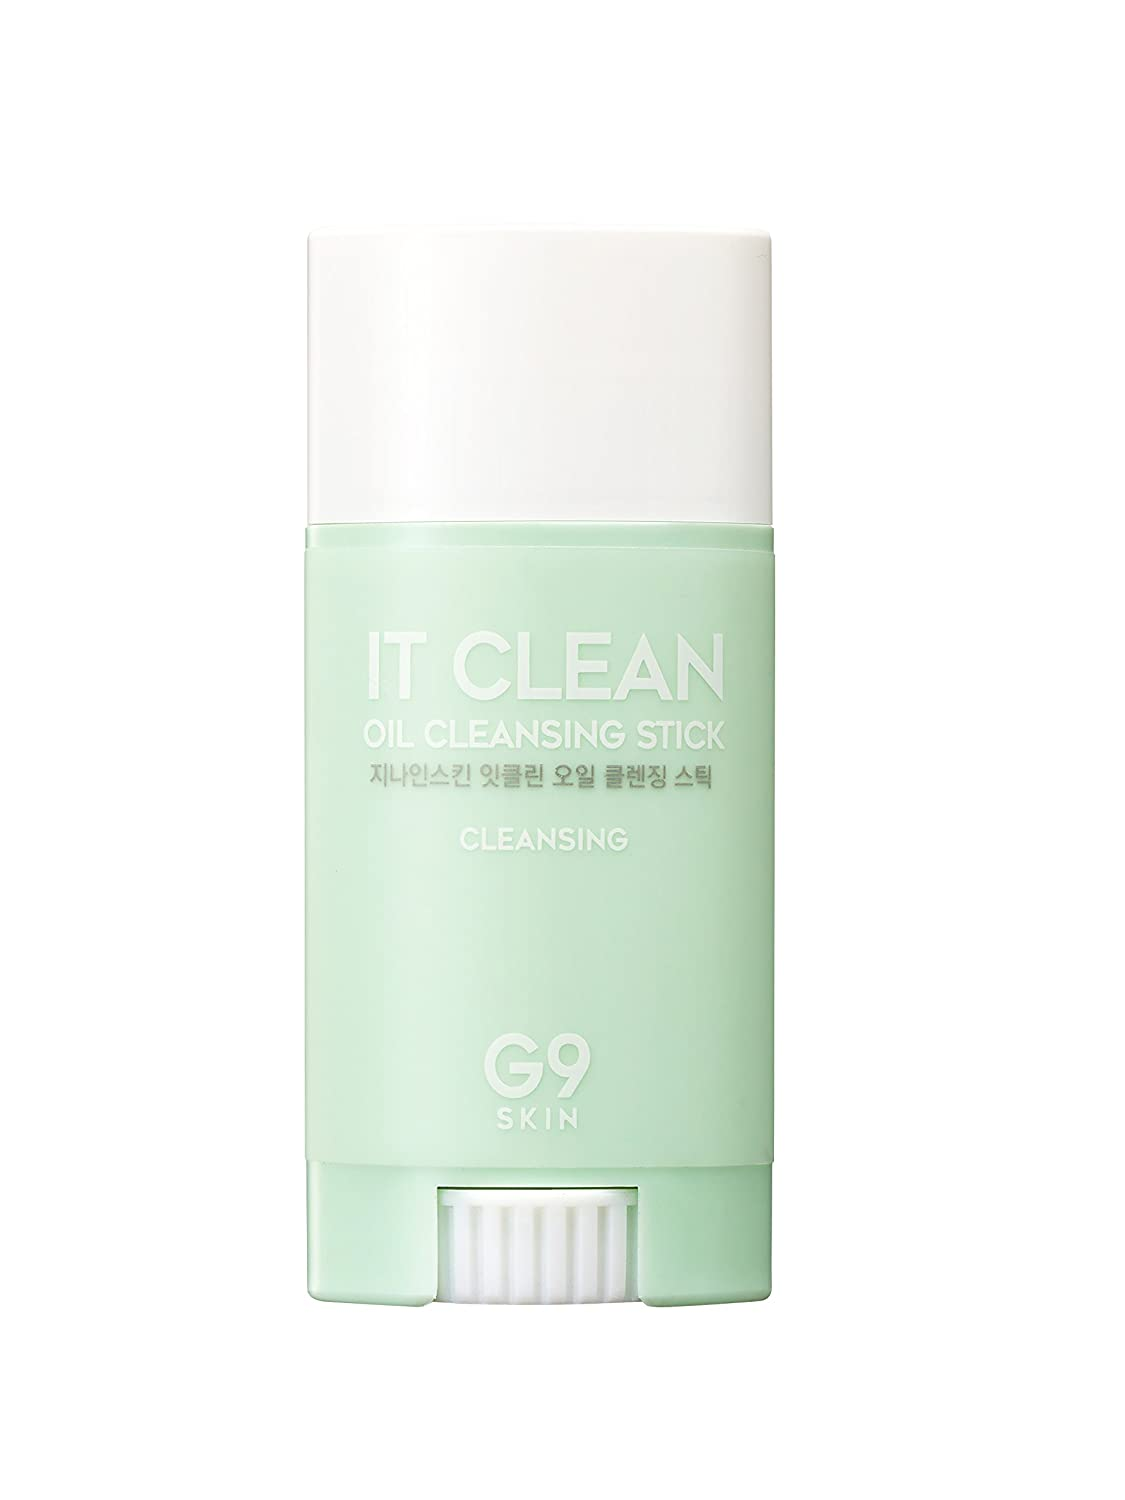 [G9SKIN]It Clean Oil Cleansing Stick